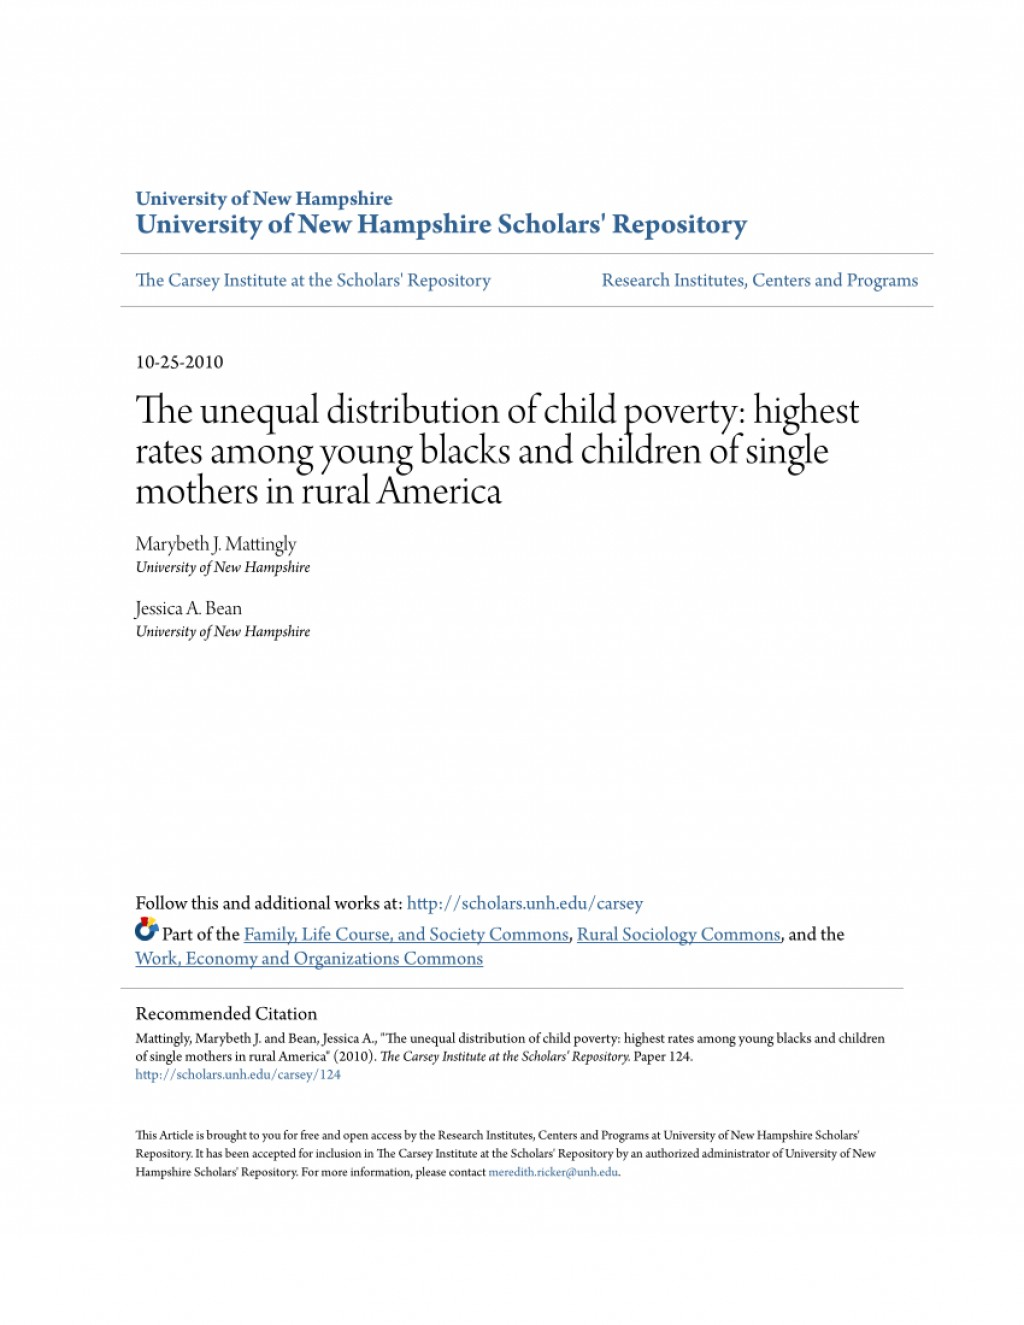 006 Research Paper Largepreview Free On Poverty In Formidable America Large